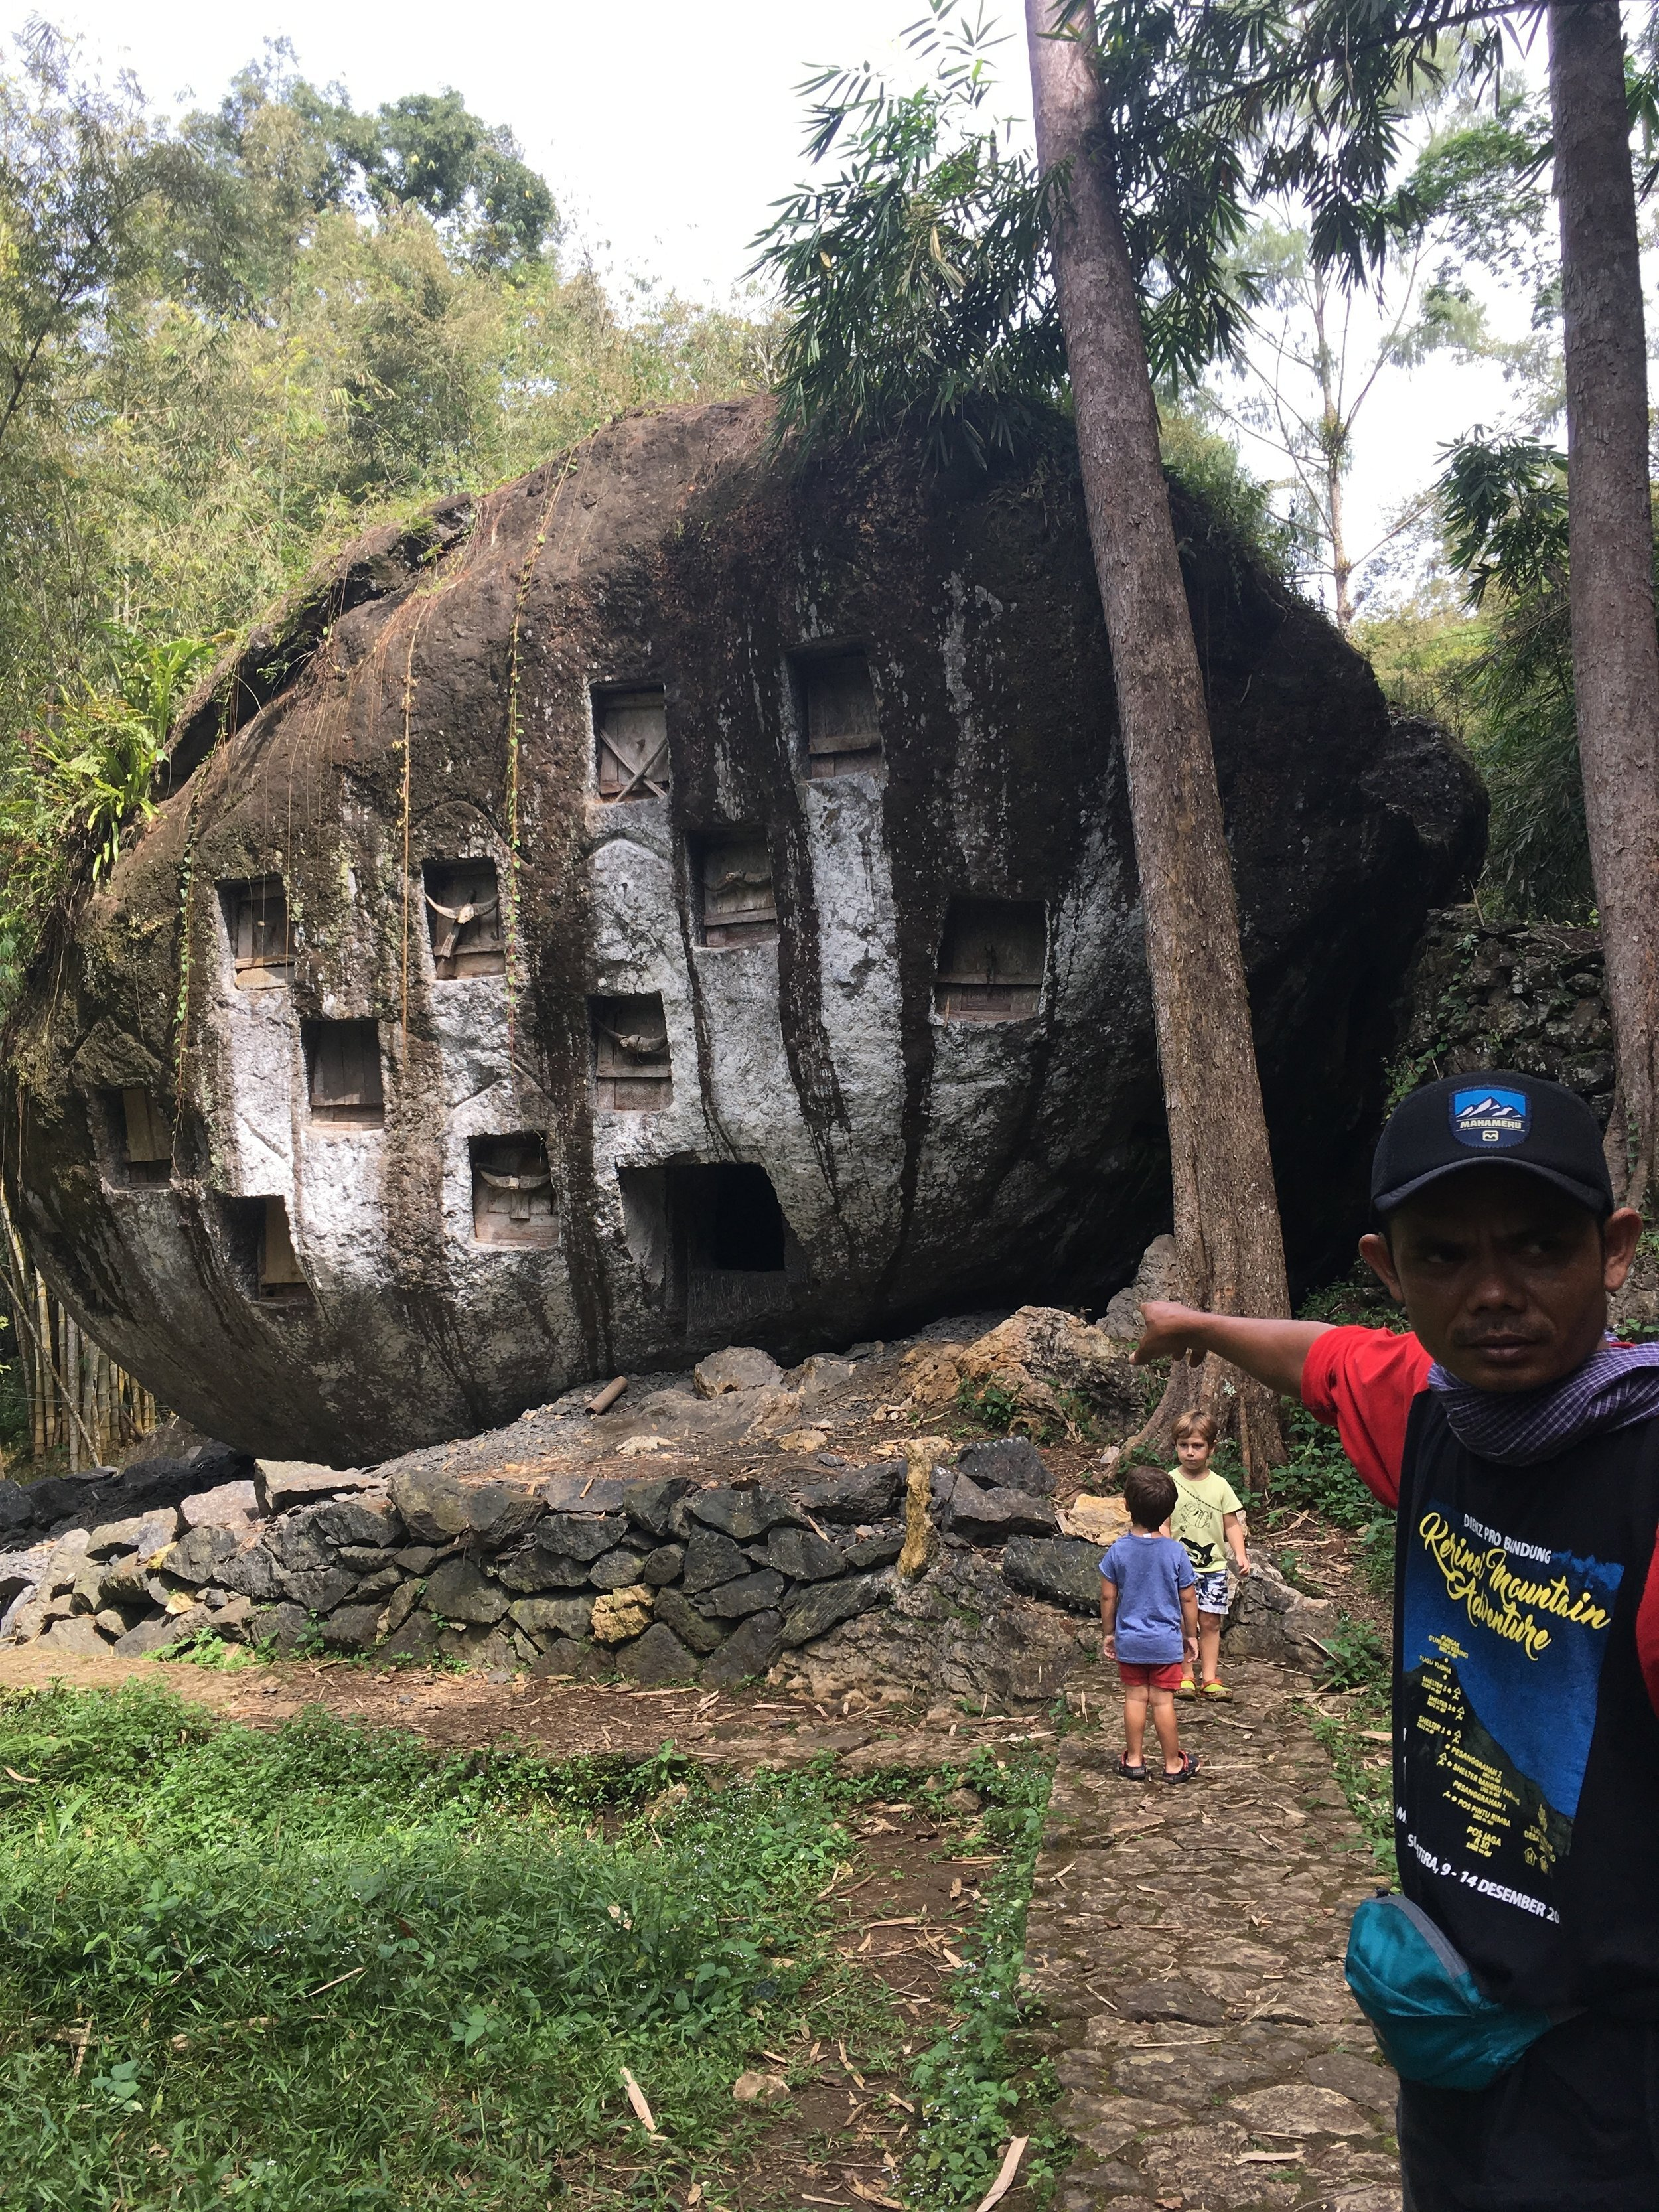 With Ino, knowing Toraja. On the rock, some graves.